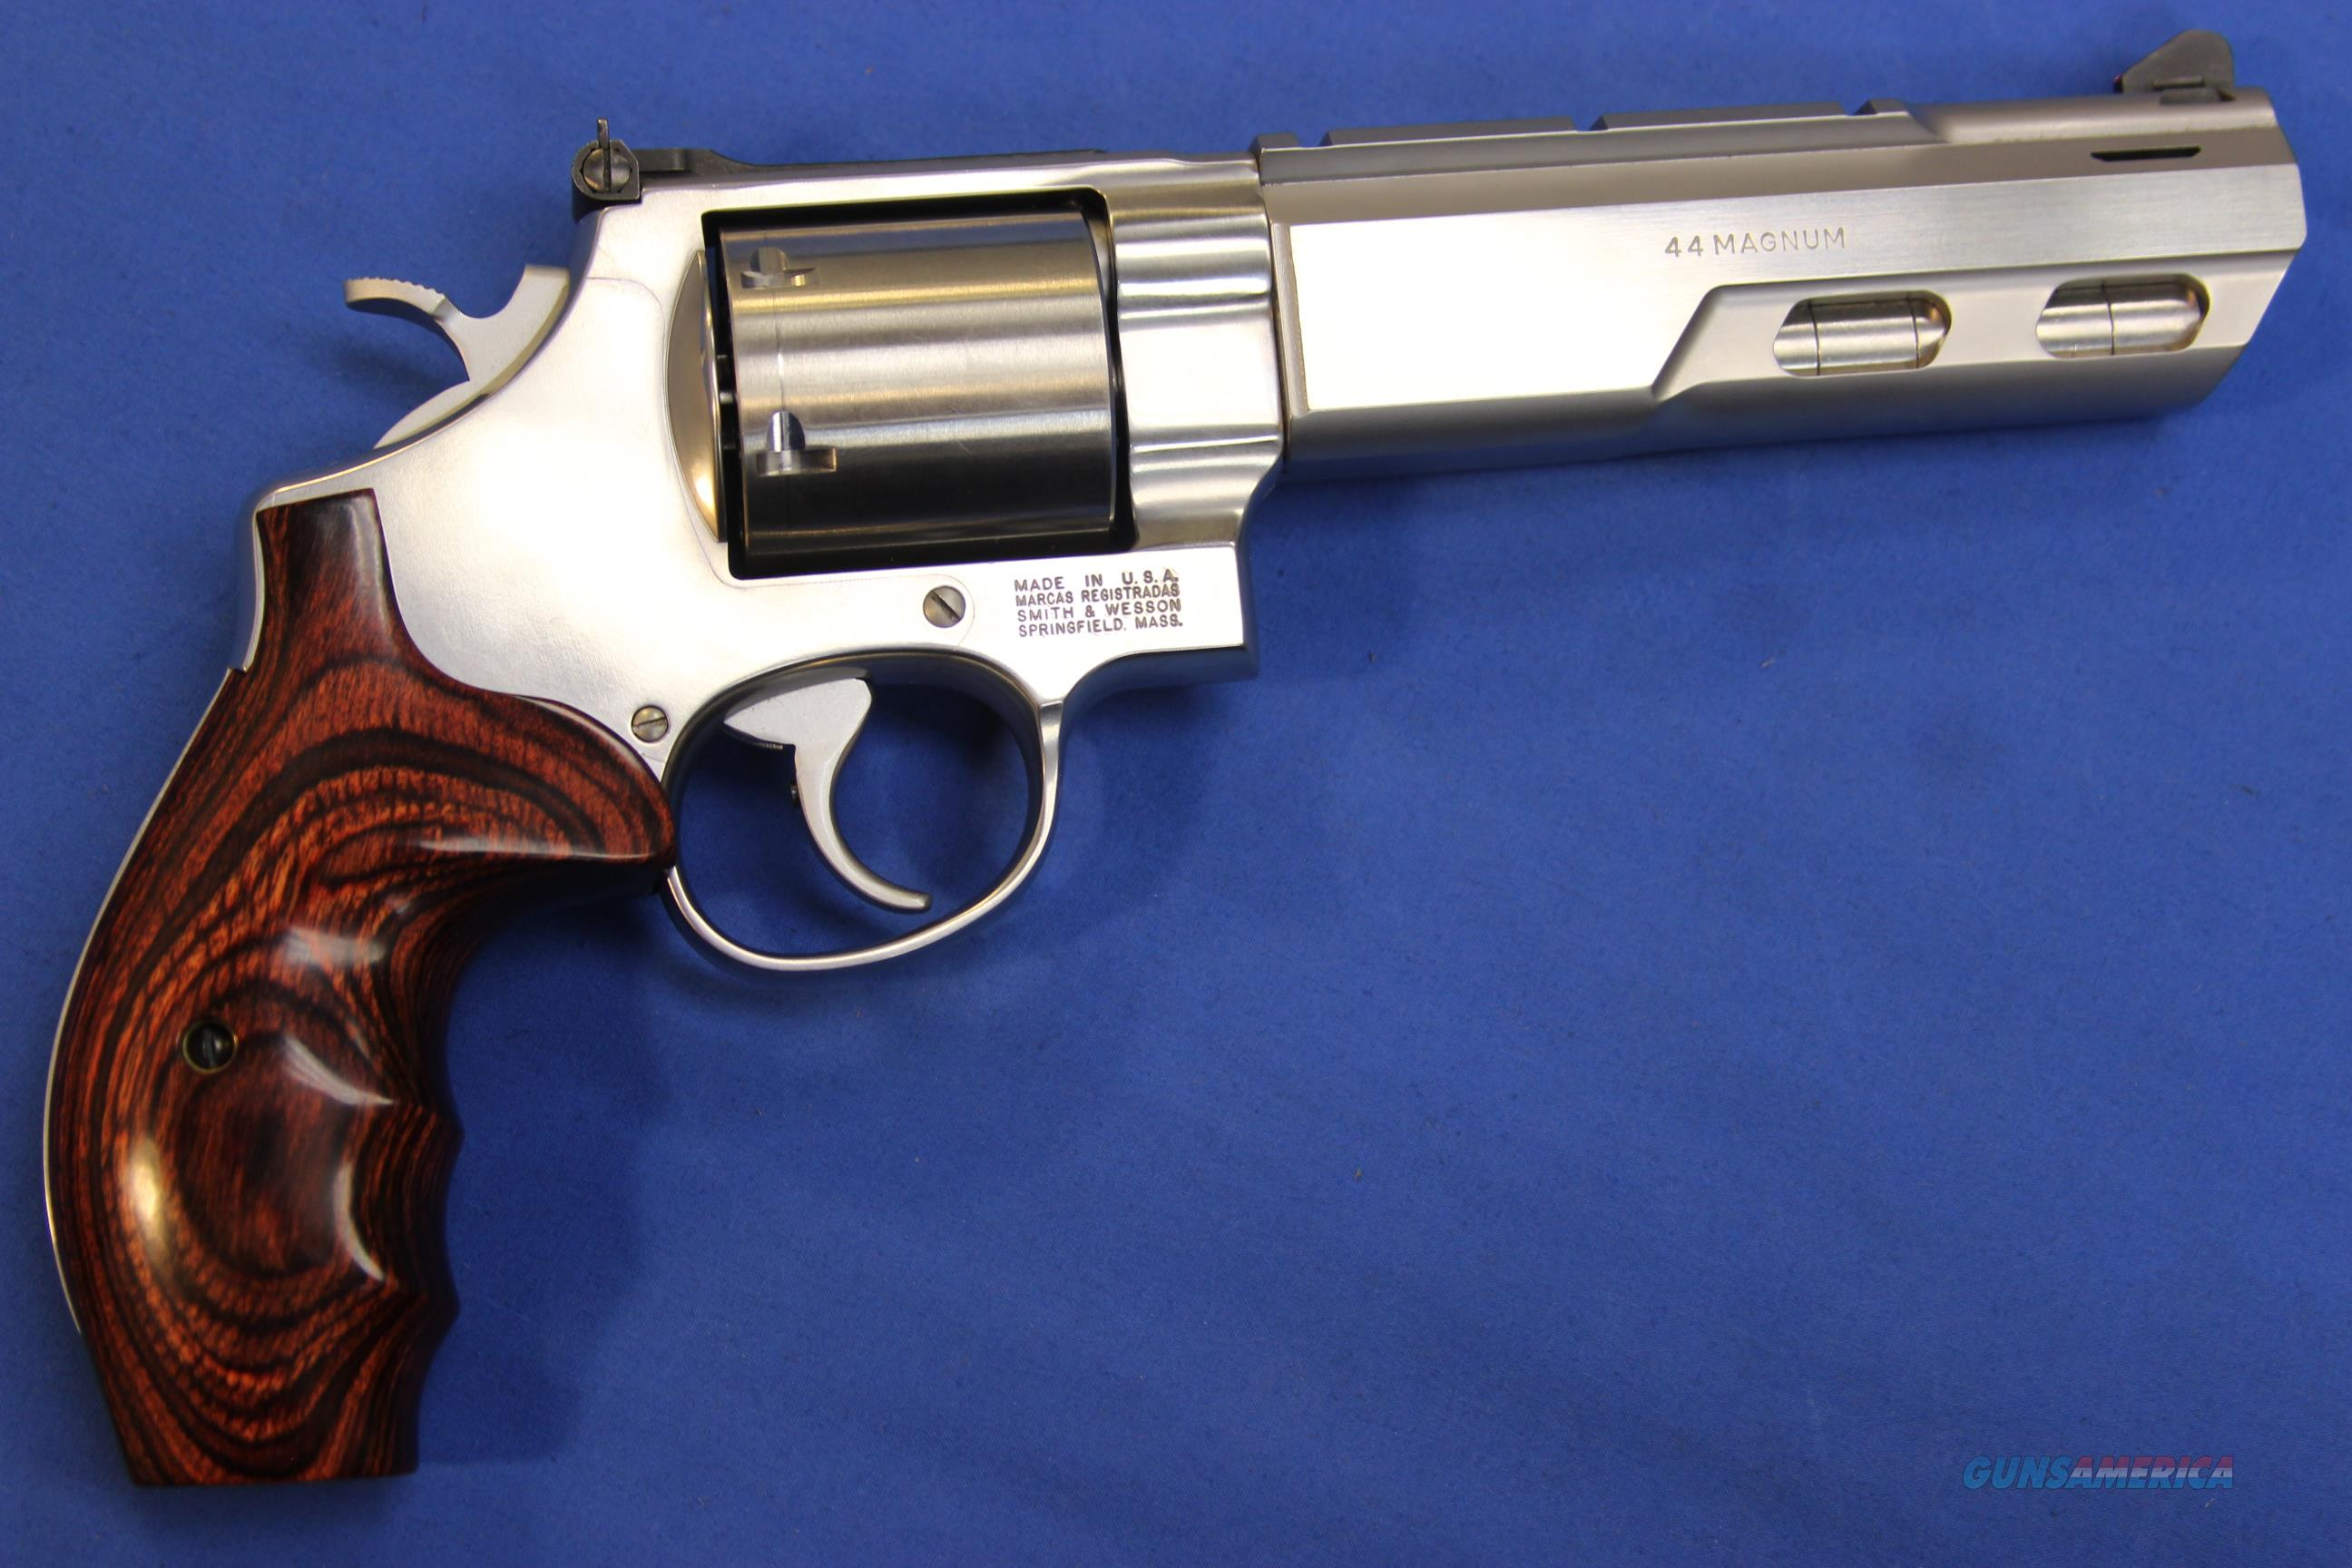 SMITH & WESSON 629-5 PERFORMANCE CENTER .44 MAG  Guns > Pistols > Smith & Wesson Revolvers > Performance Center